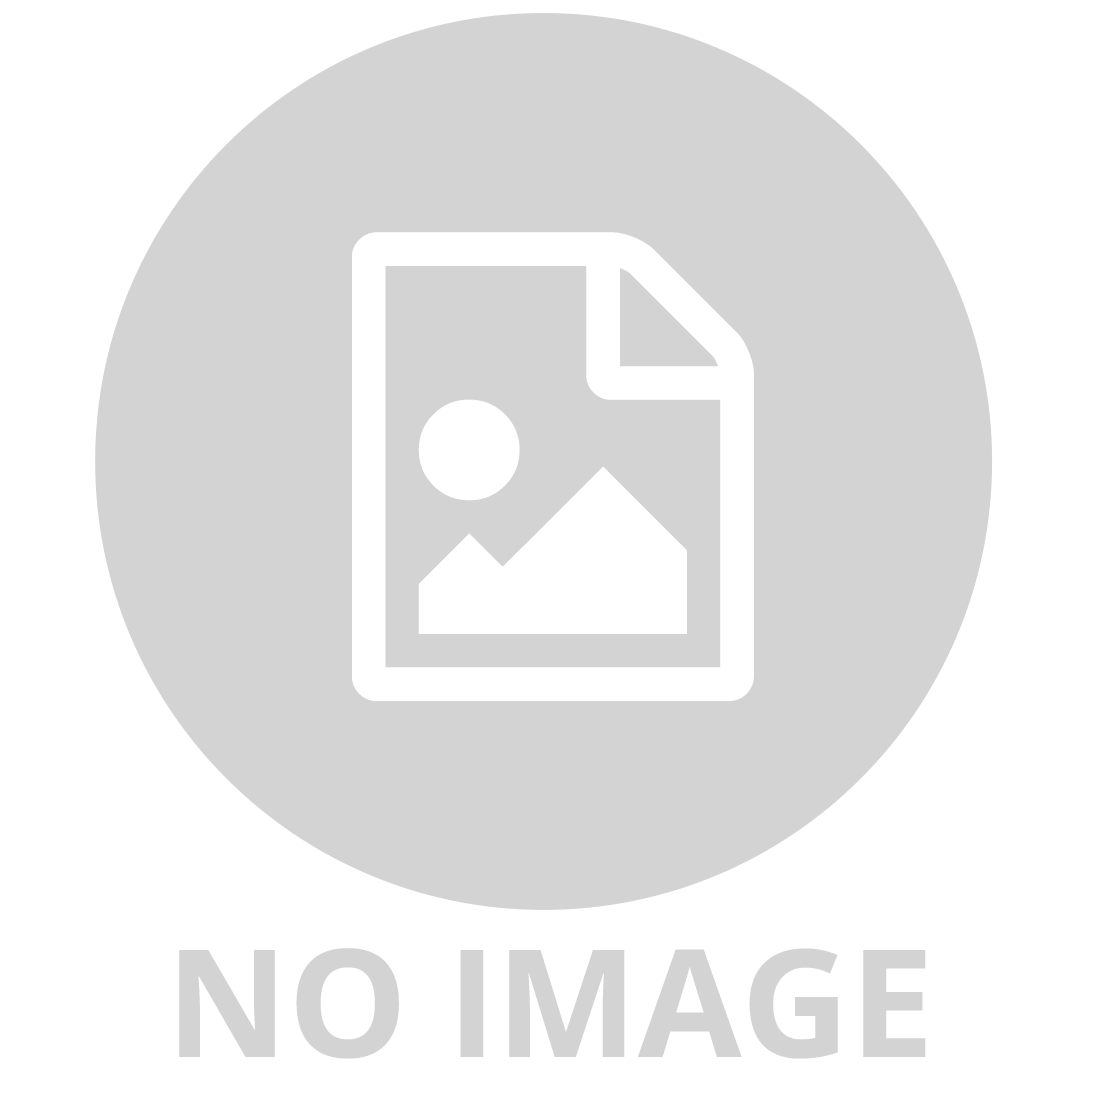 PLAYWORLD- TRIKE 2 IN 1 YELLOW, BLUE, RED